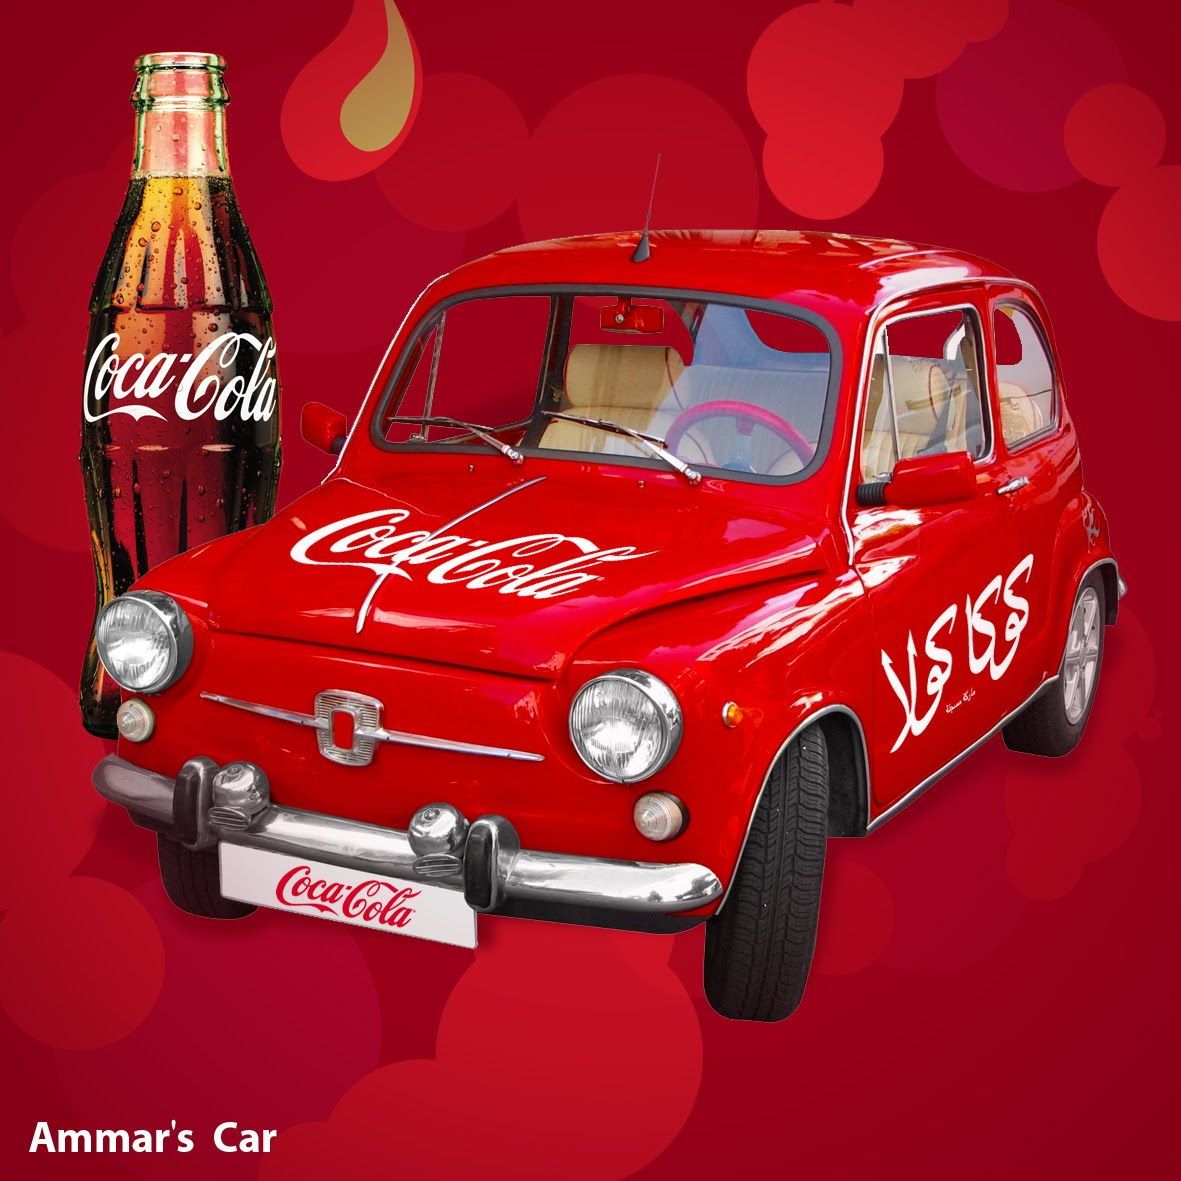 500 Car Wallpapers Wallpapers With Hd Coca Cola